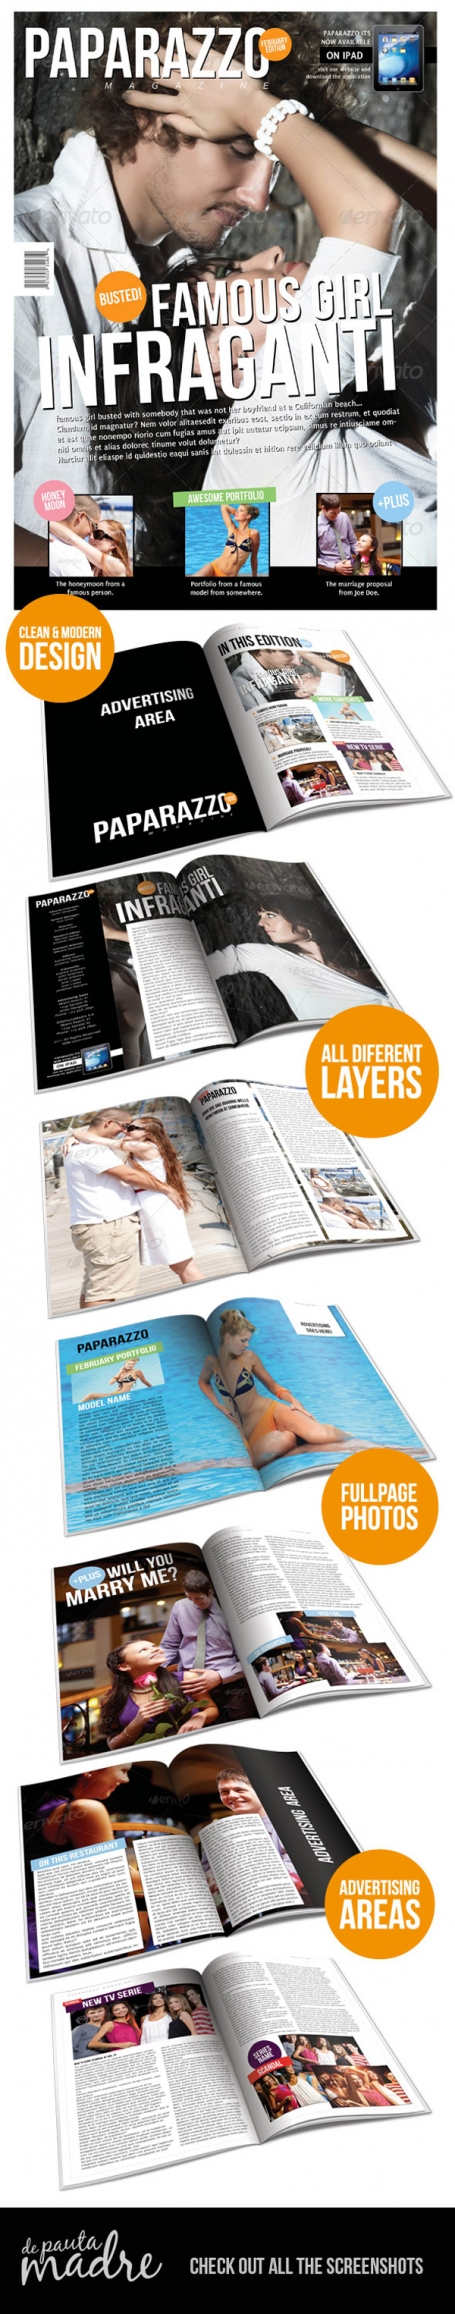 Paparazzo Magazine Indesign